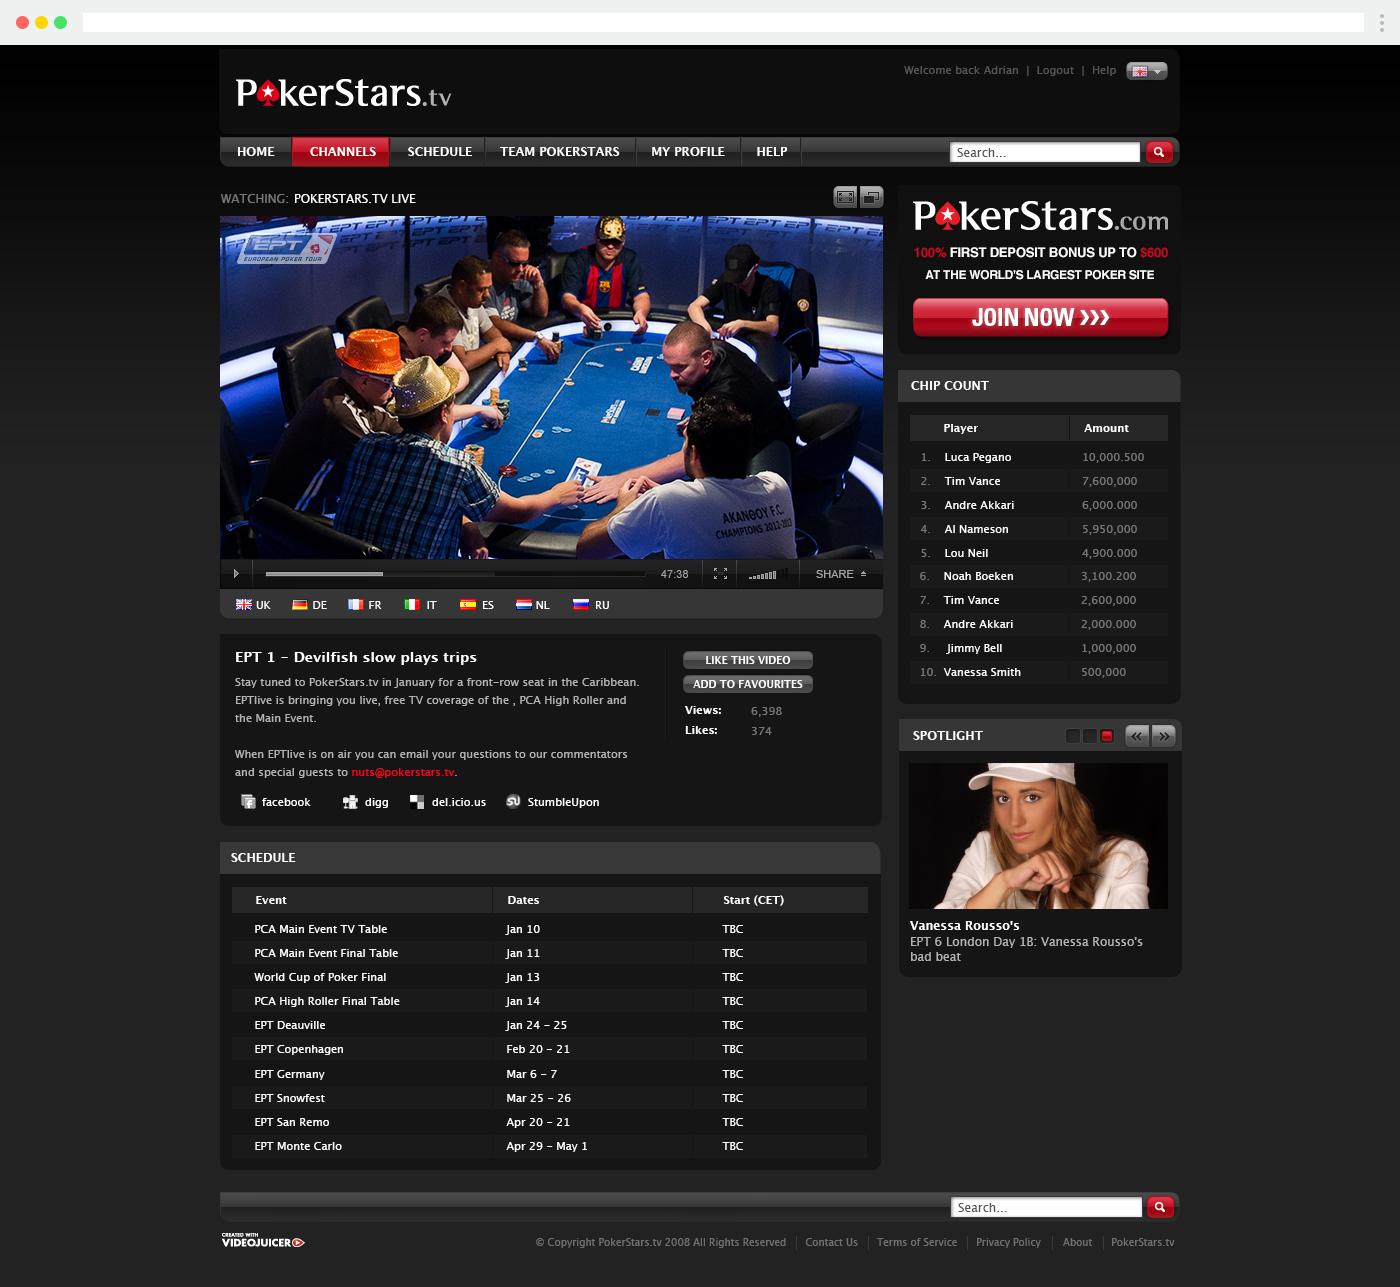 Pokerstars.tv live broadcast page